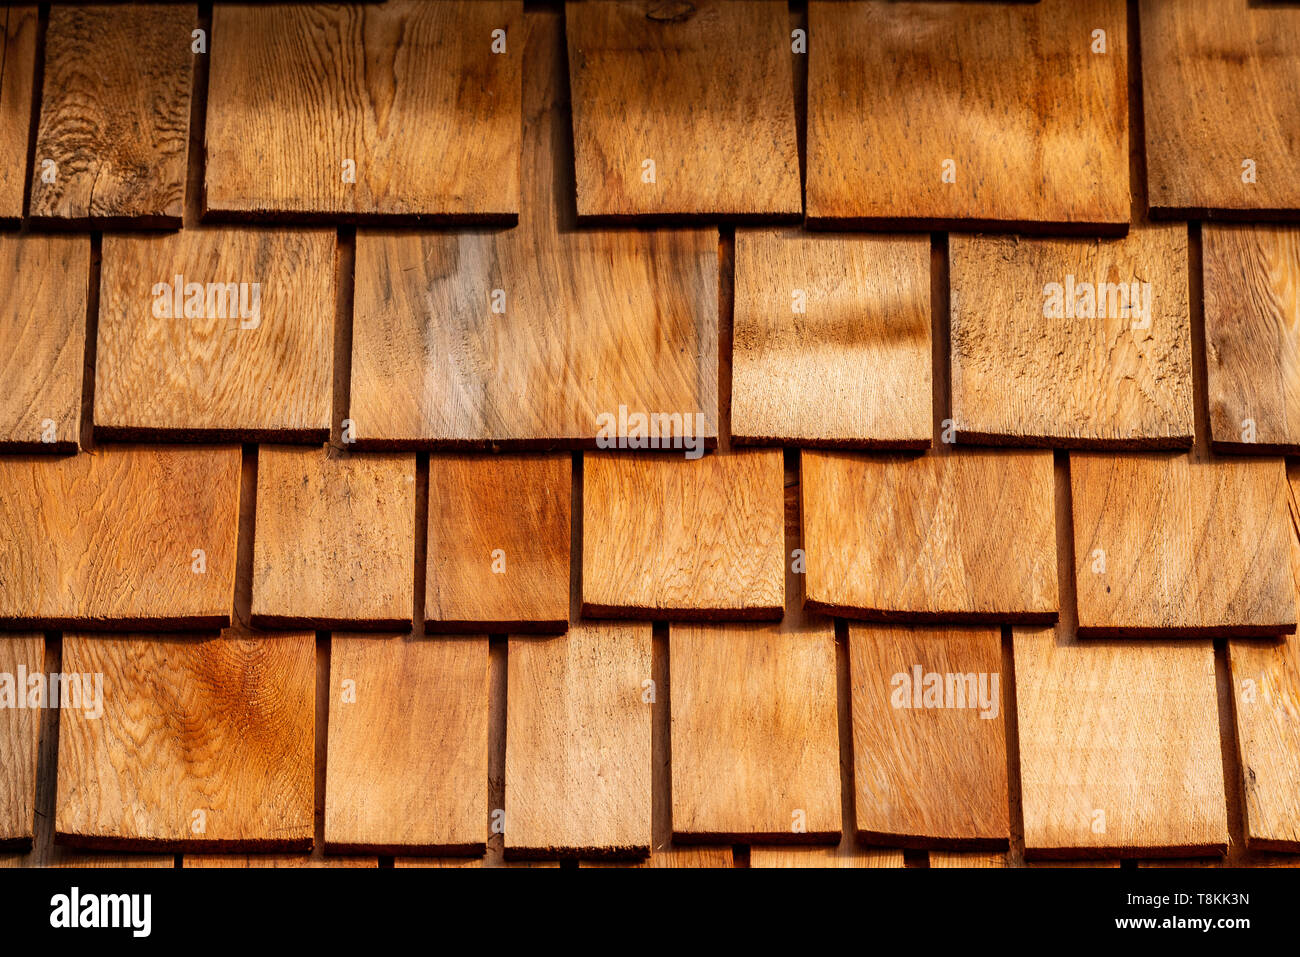 Detail shot of a wooden shingle roof - Stock Image